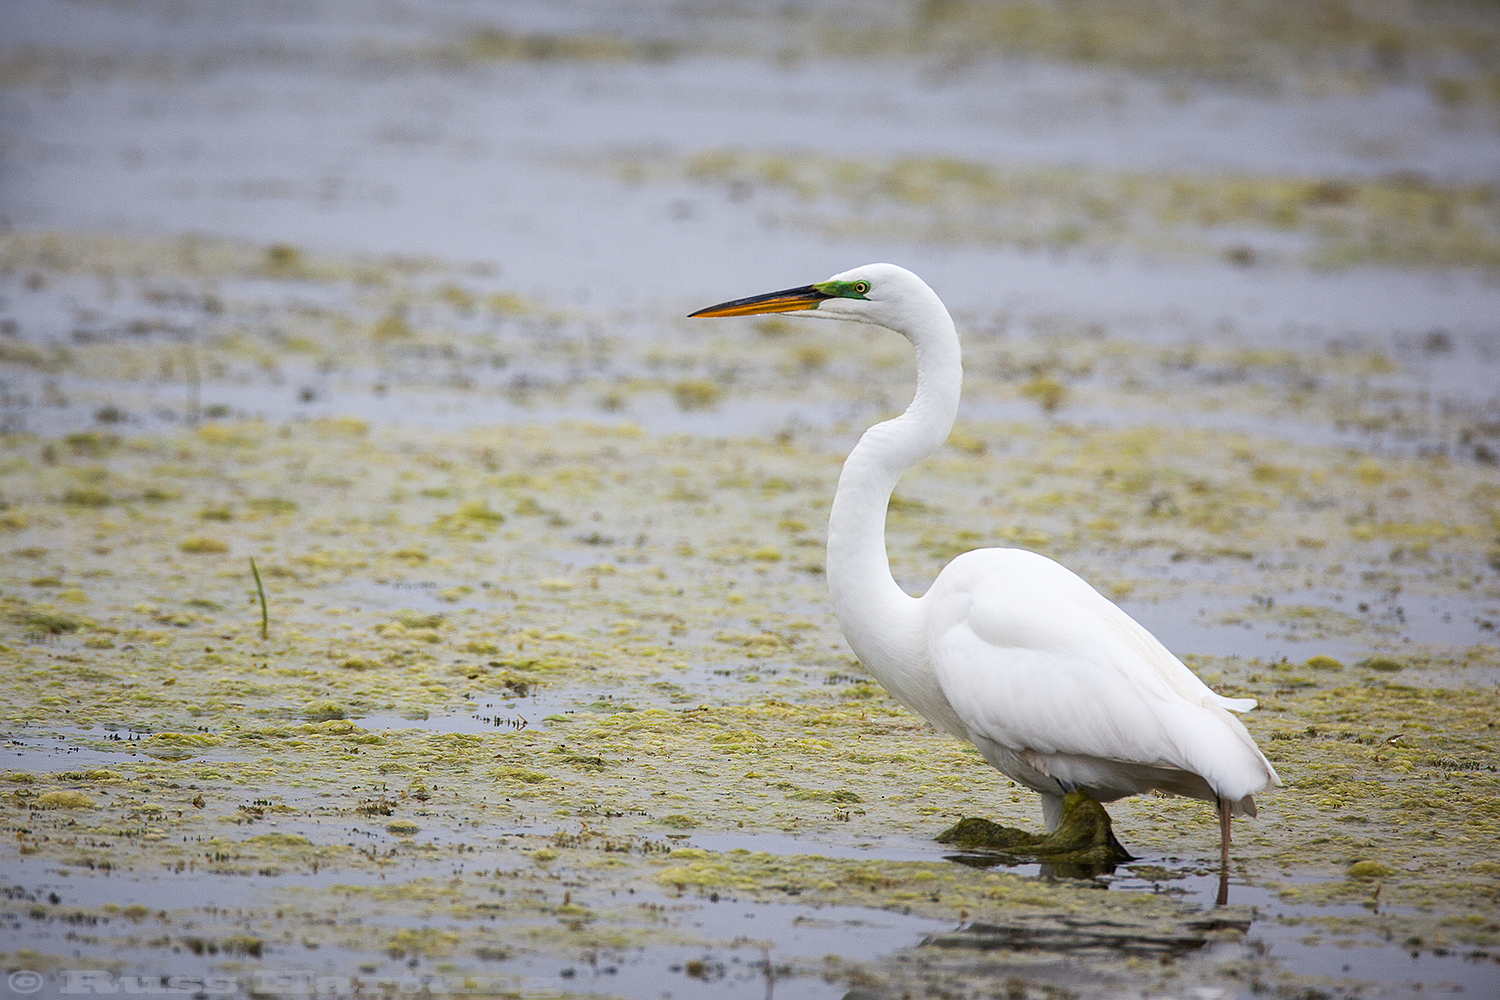 Great Egret fishing. Orlando Wetlands Park, Florida.